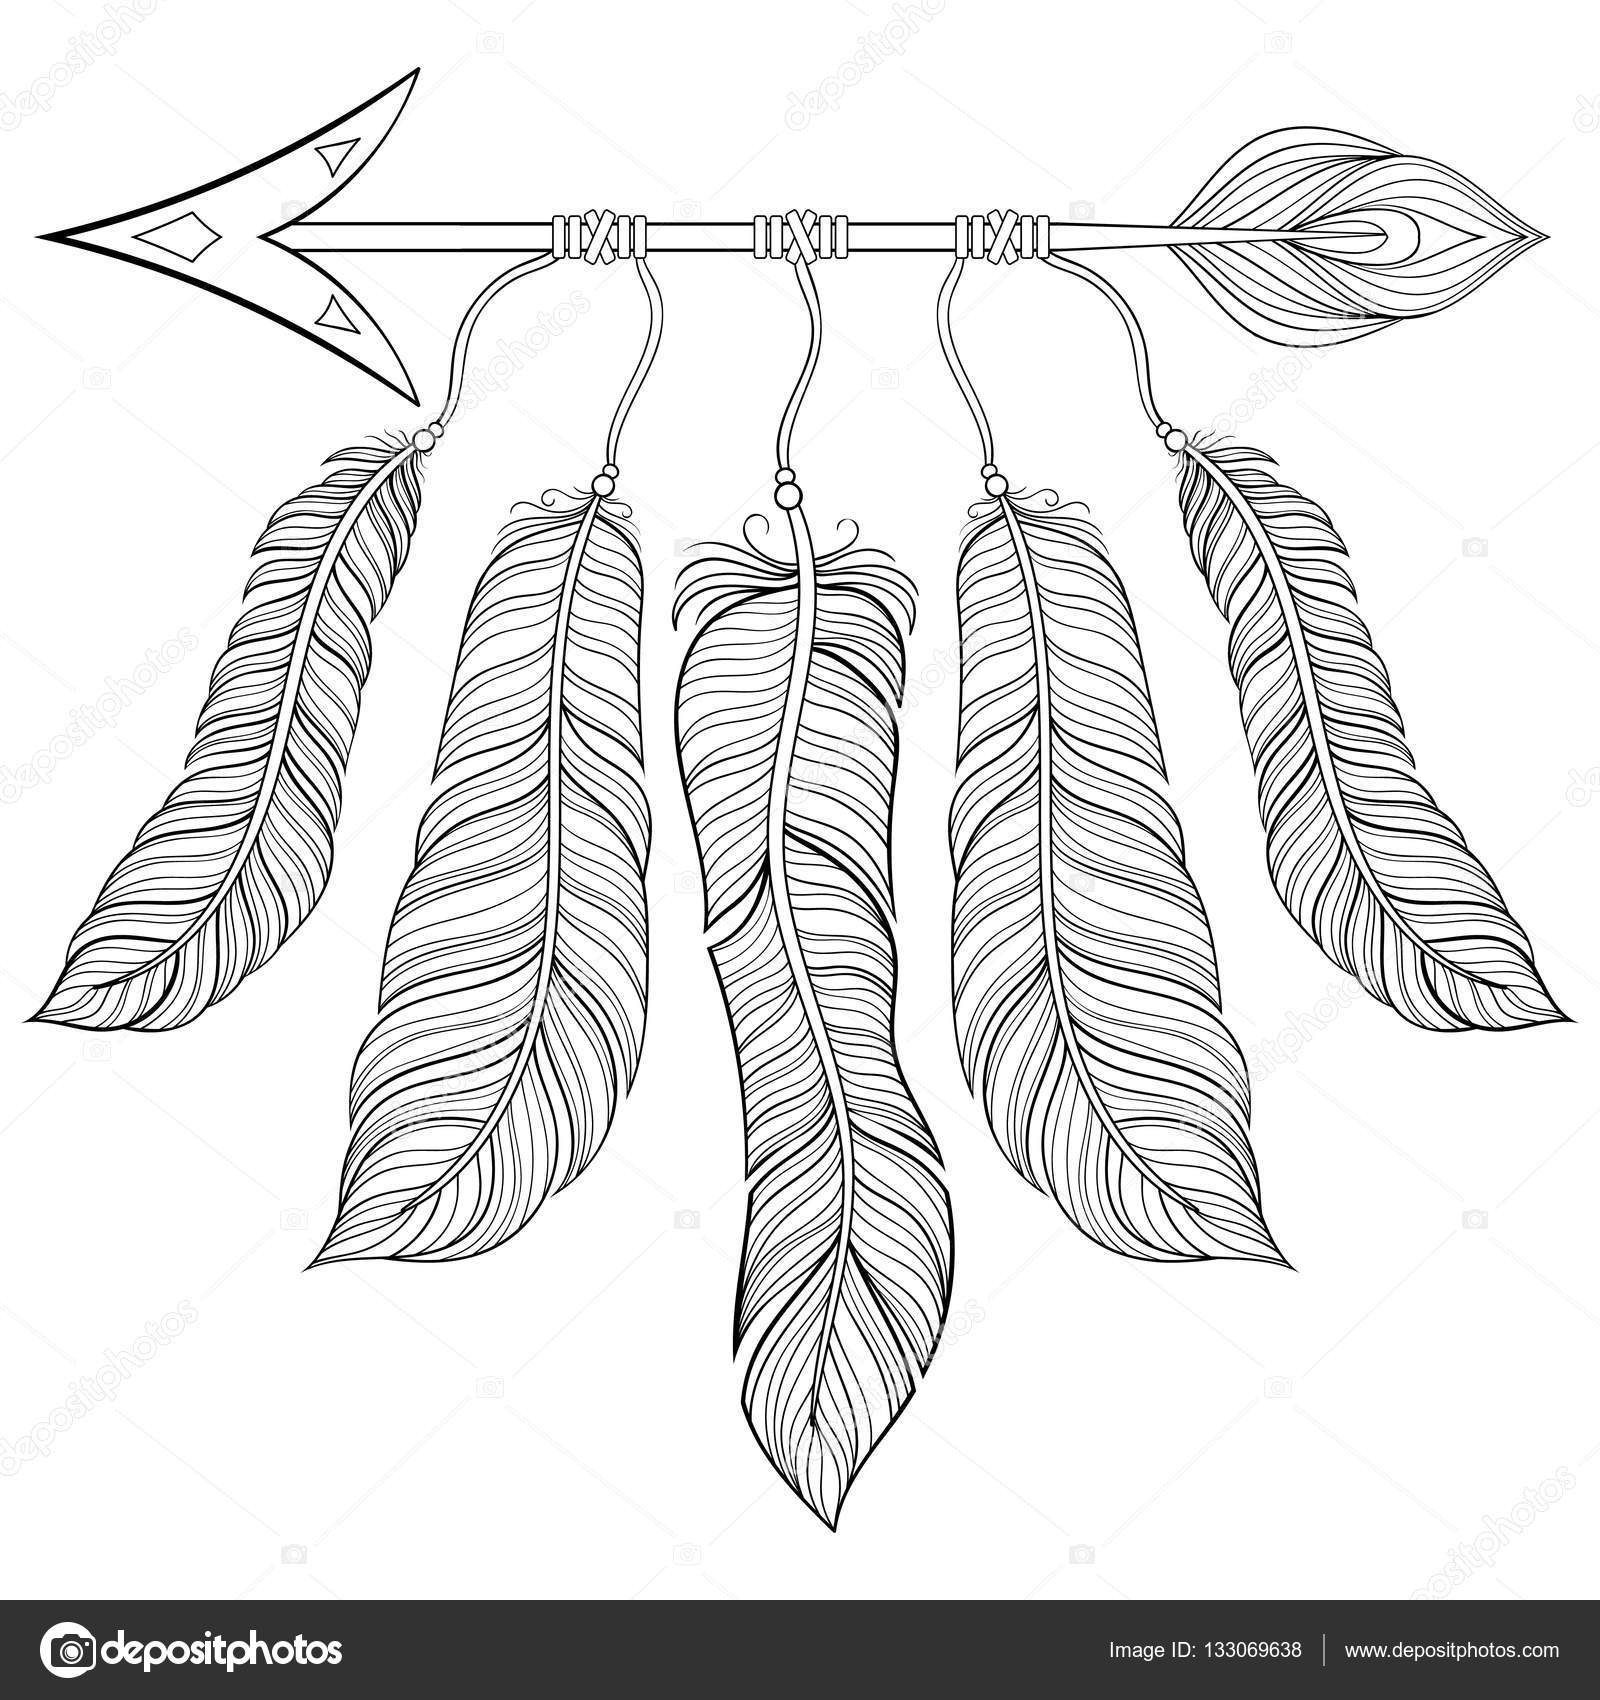 Coloring Pages Of Feathers Beautiful Beauty Black Decoration Design Doodle Drawing Drawn Dream